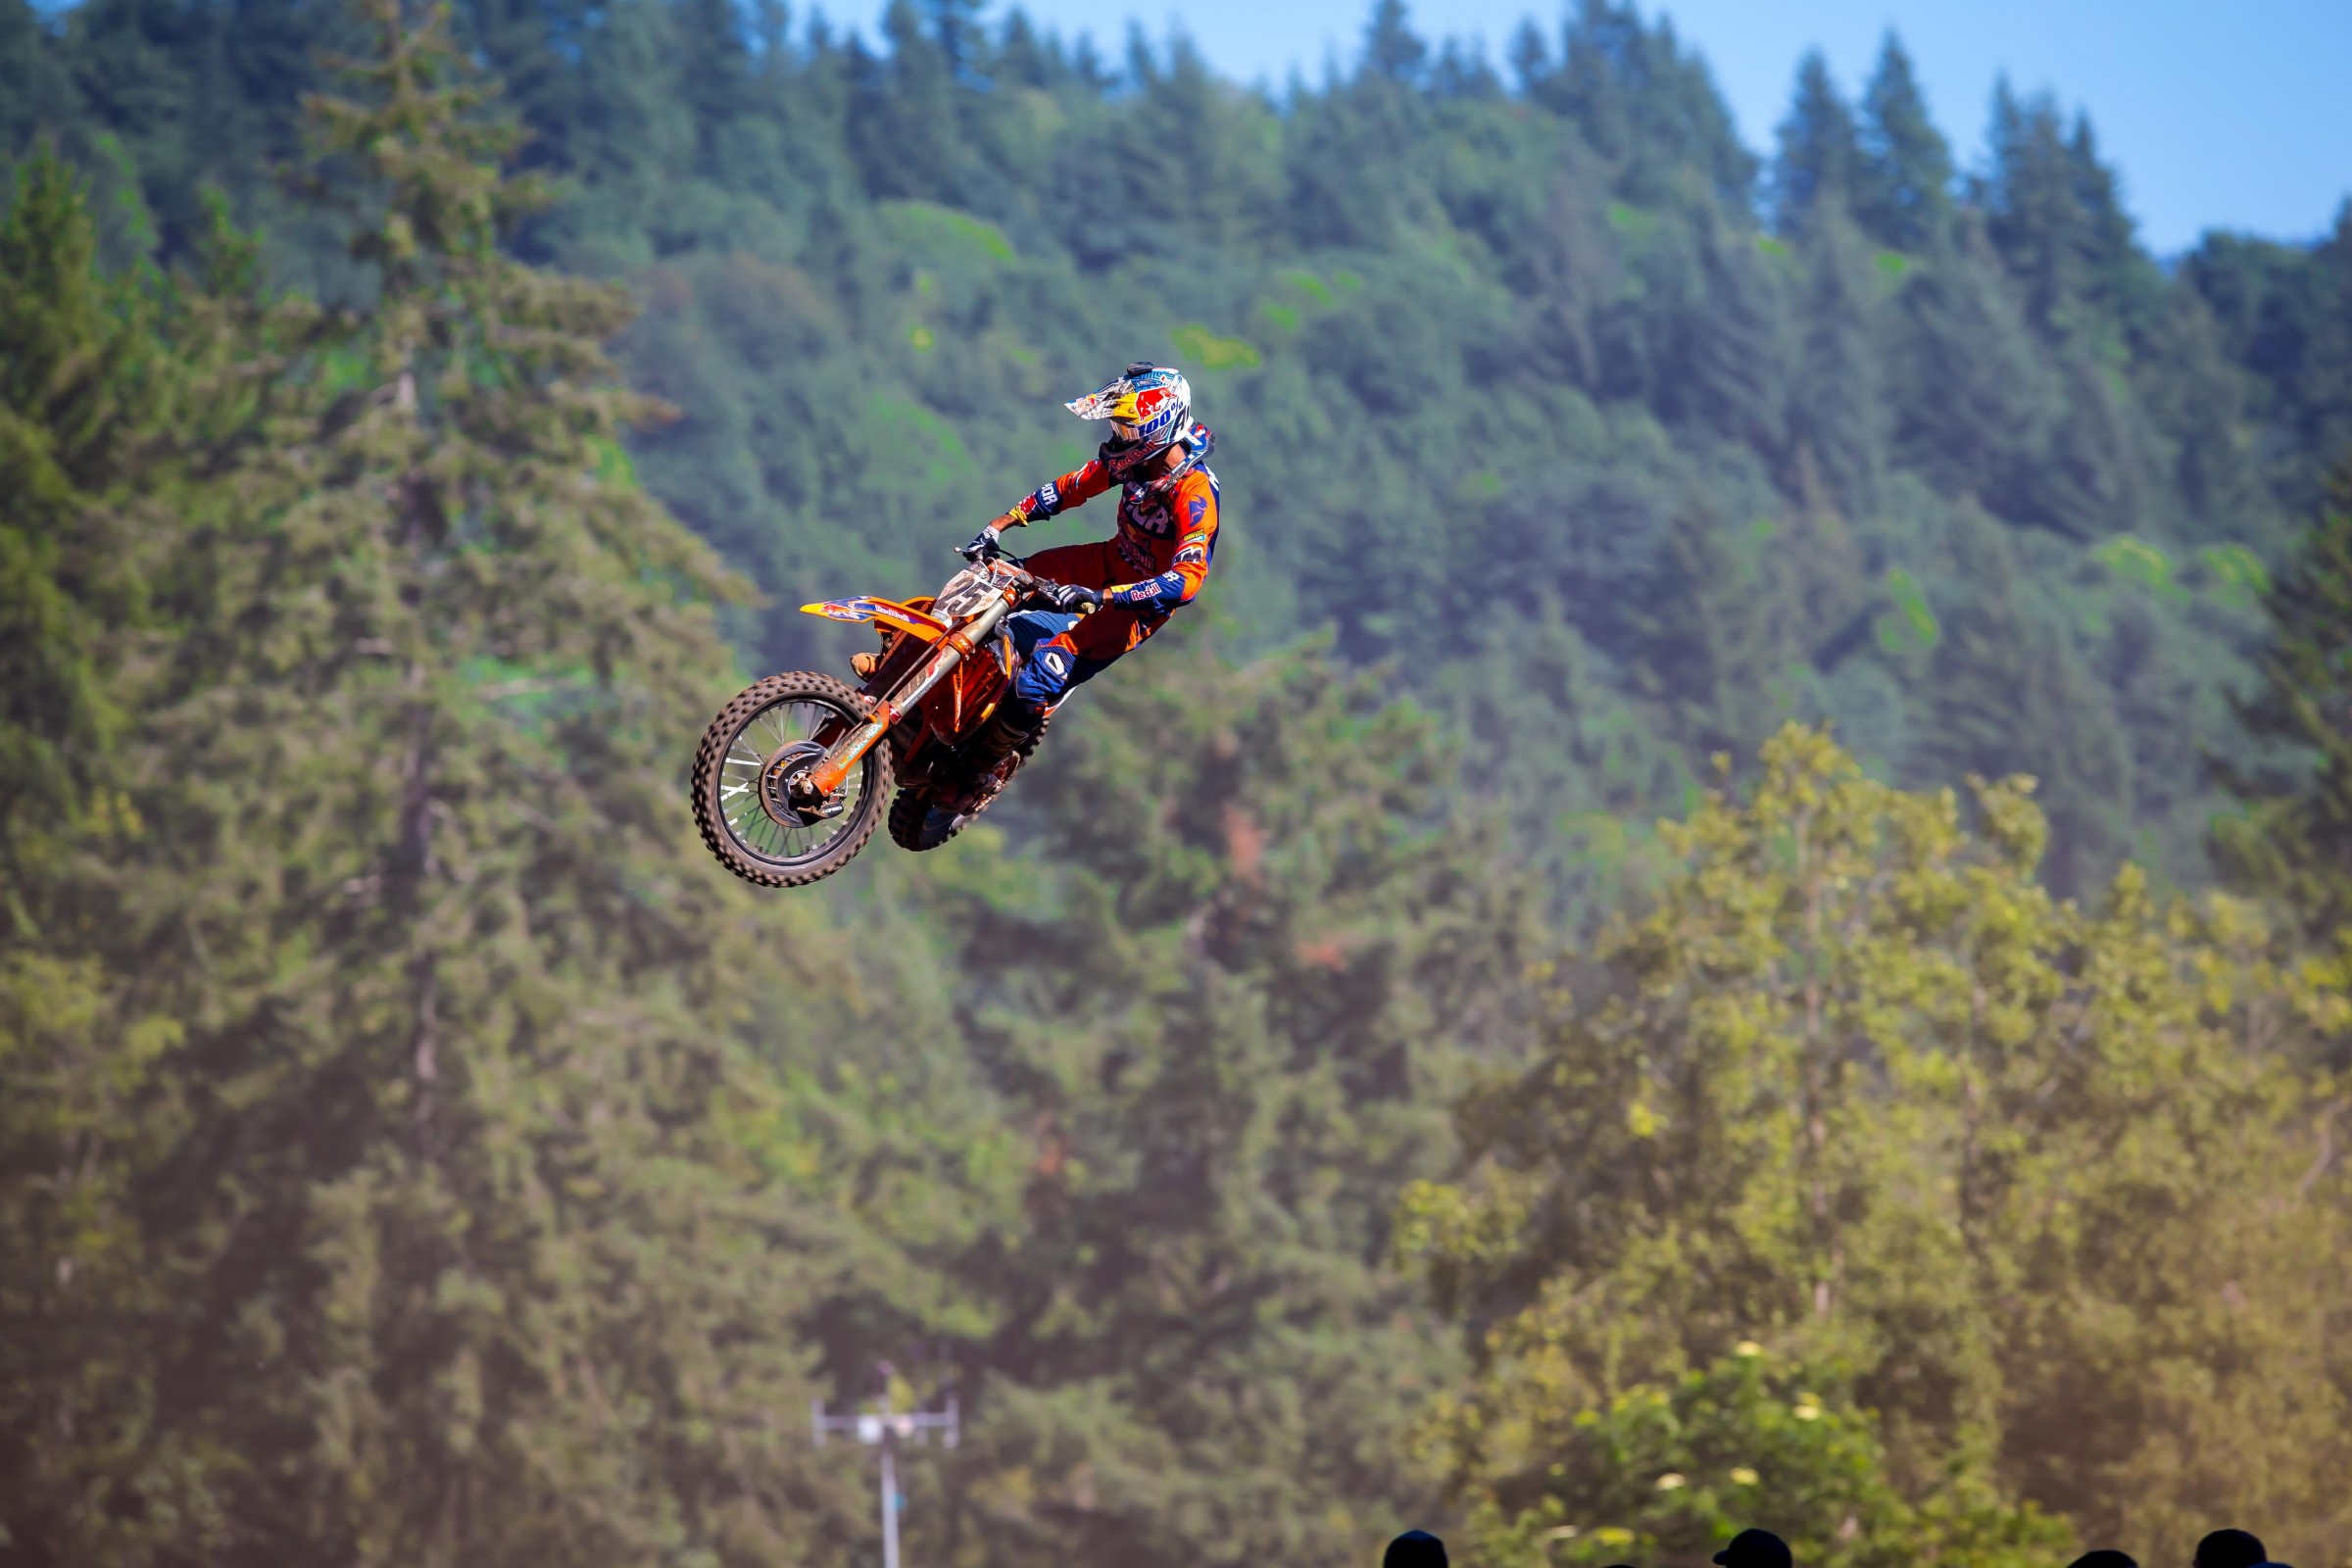 Can Musquin keep his win streak going this weekend?